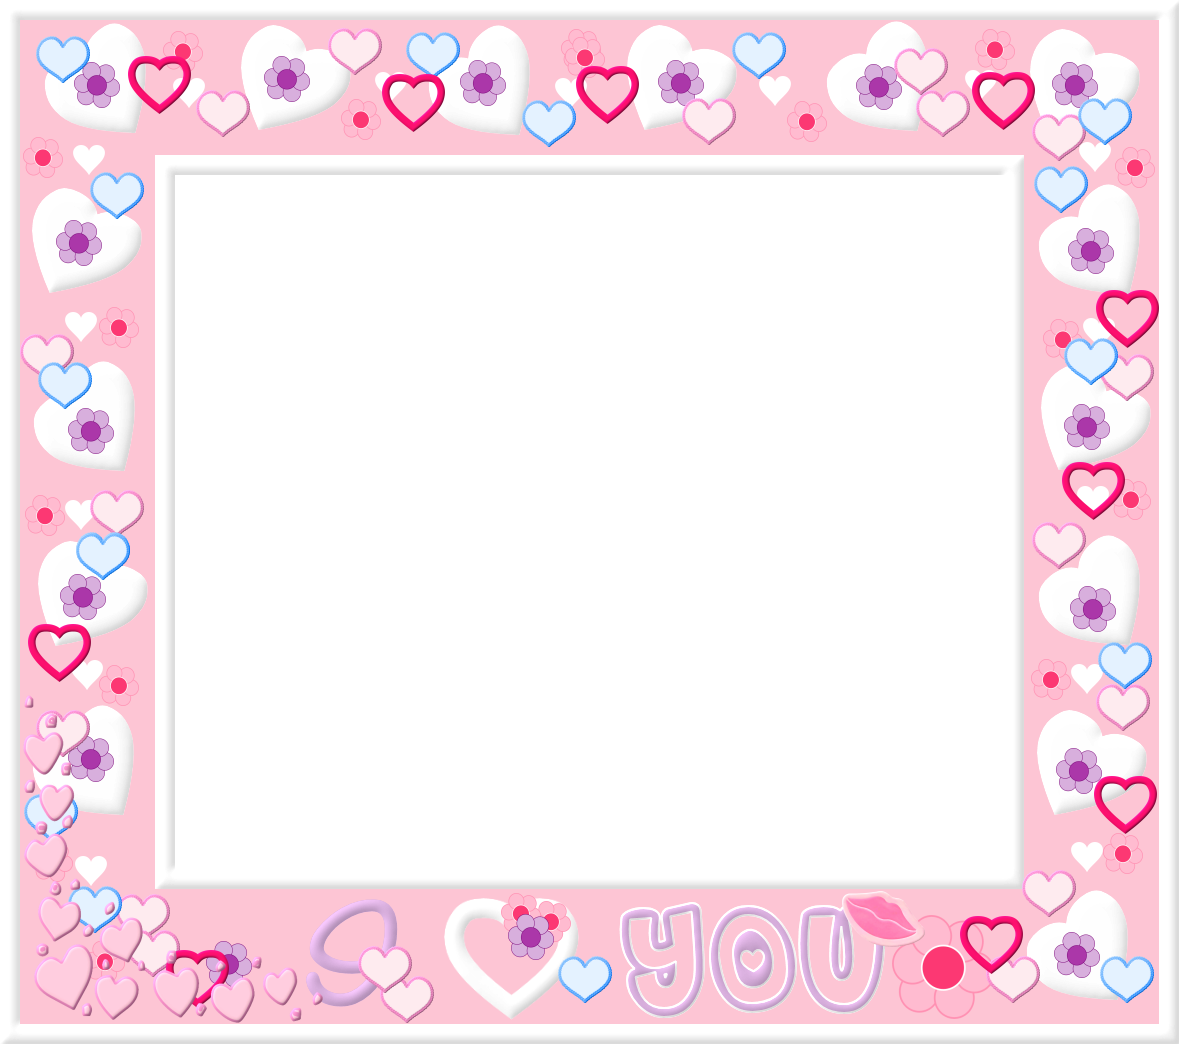 Free Pink and White Heart Frame Valentine Day Border | Ideas for the ...